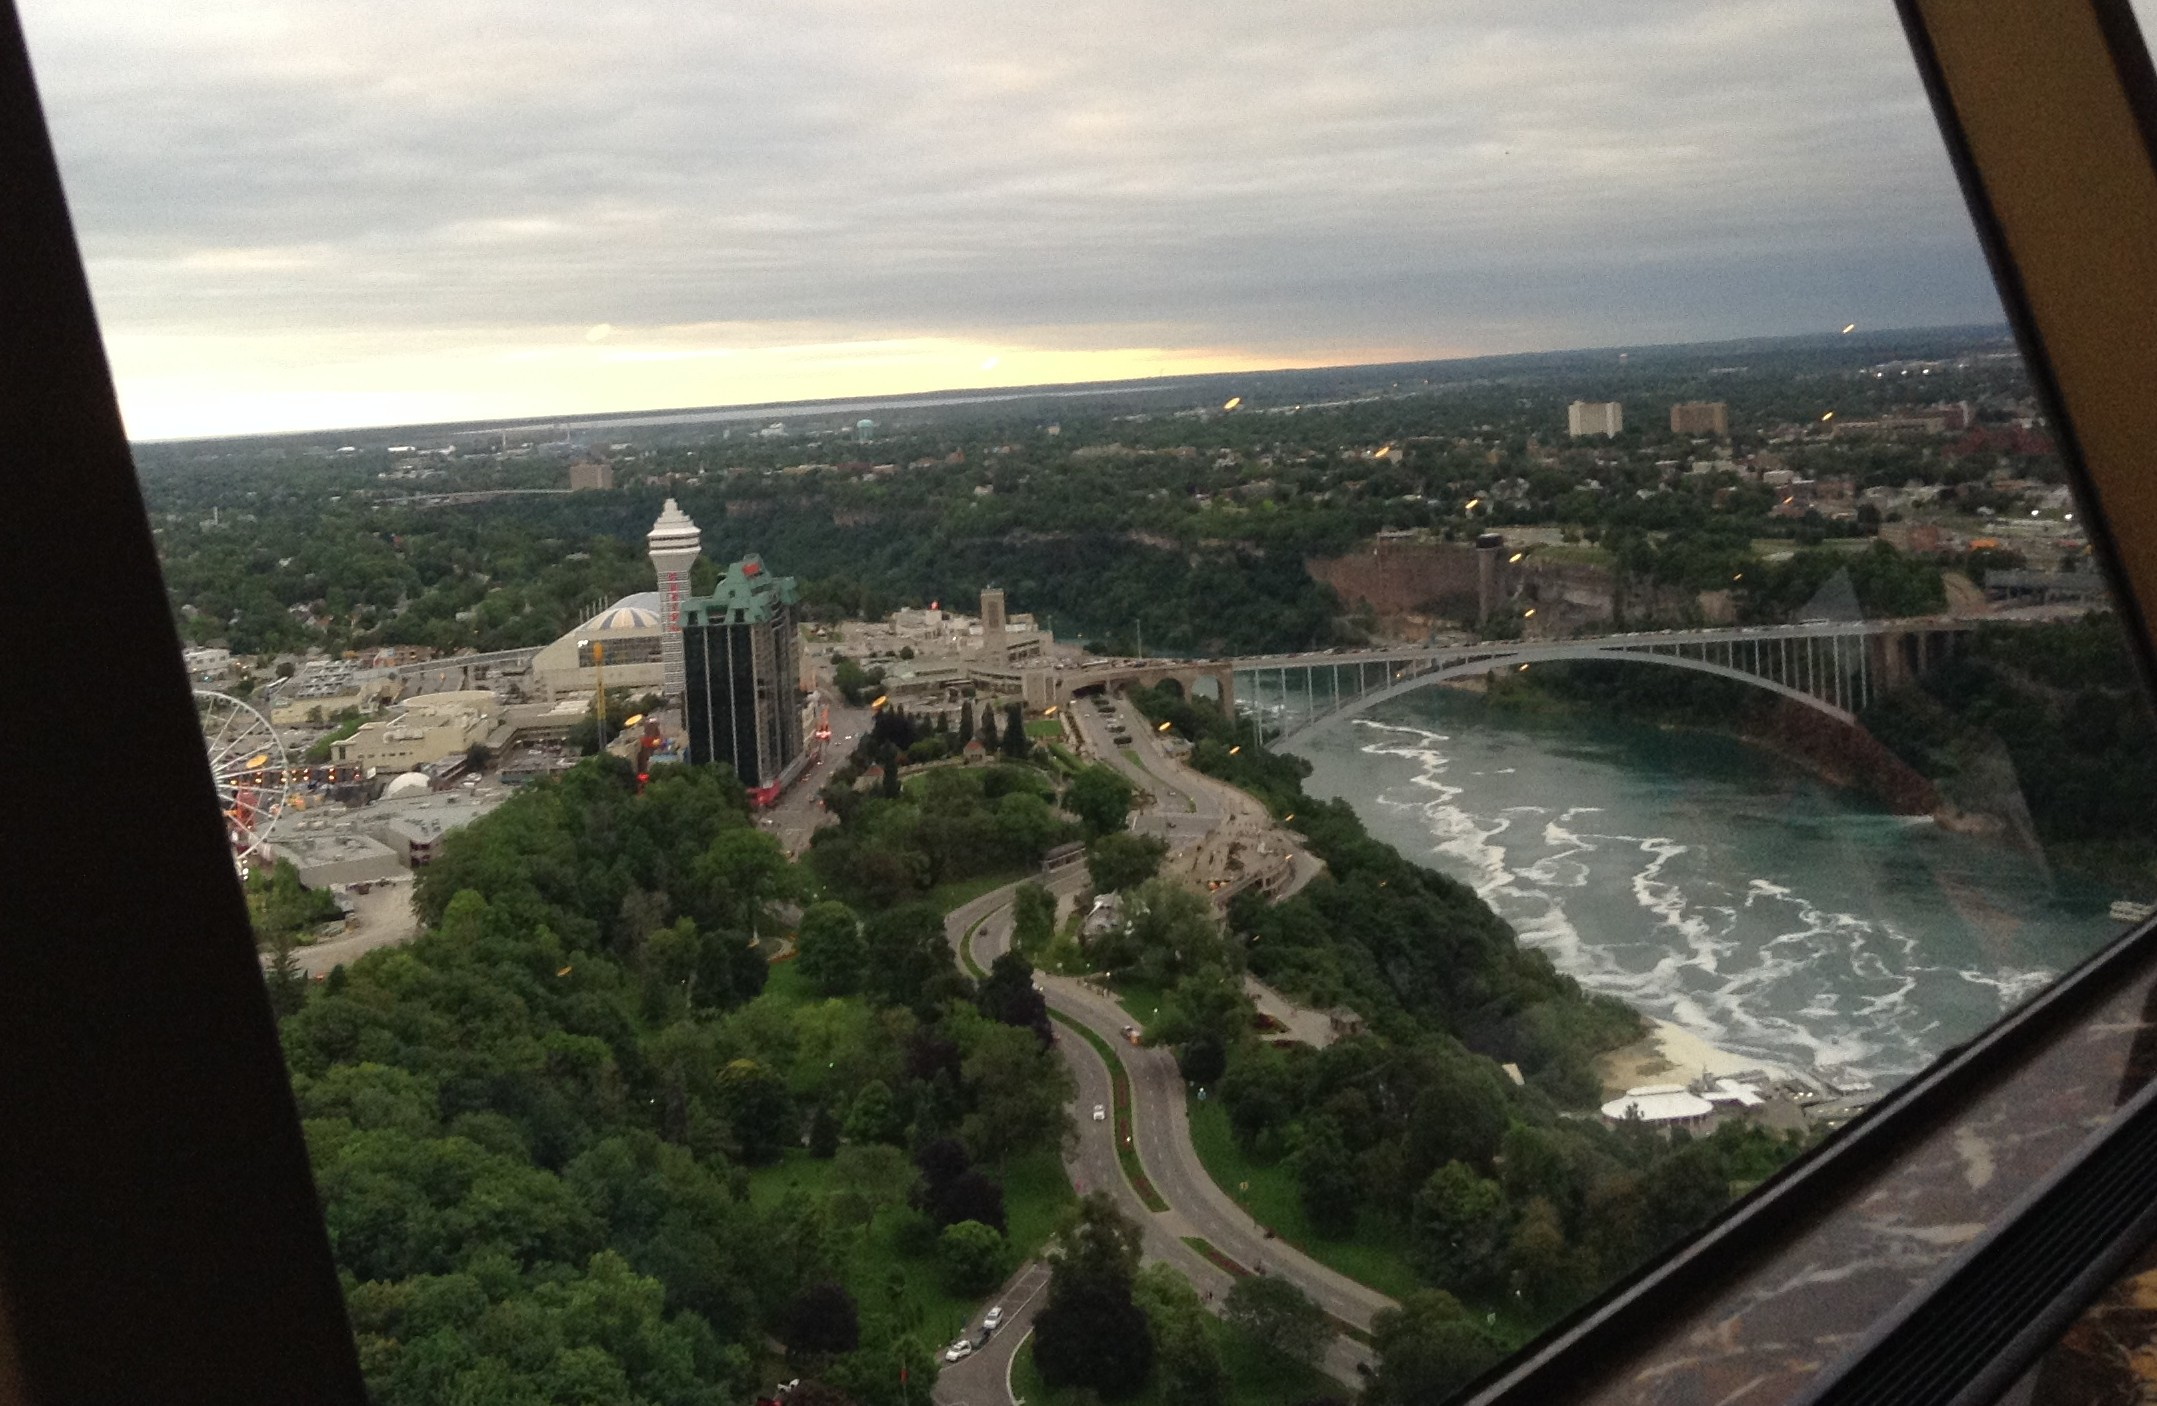 skylon tower awesome views of niagara falls as the restaurant turned we could see the bridge and the american side of niagara falls on the american side is the niagara falls state park which is the